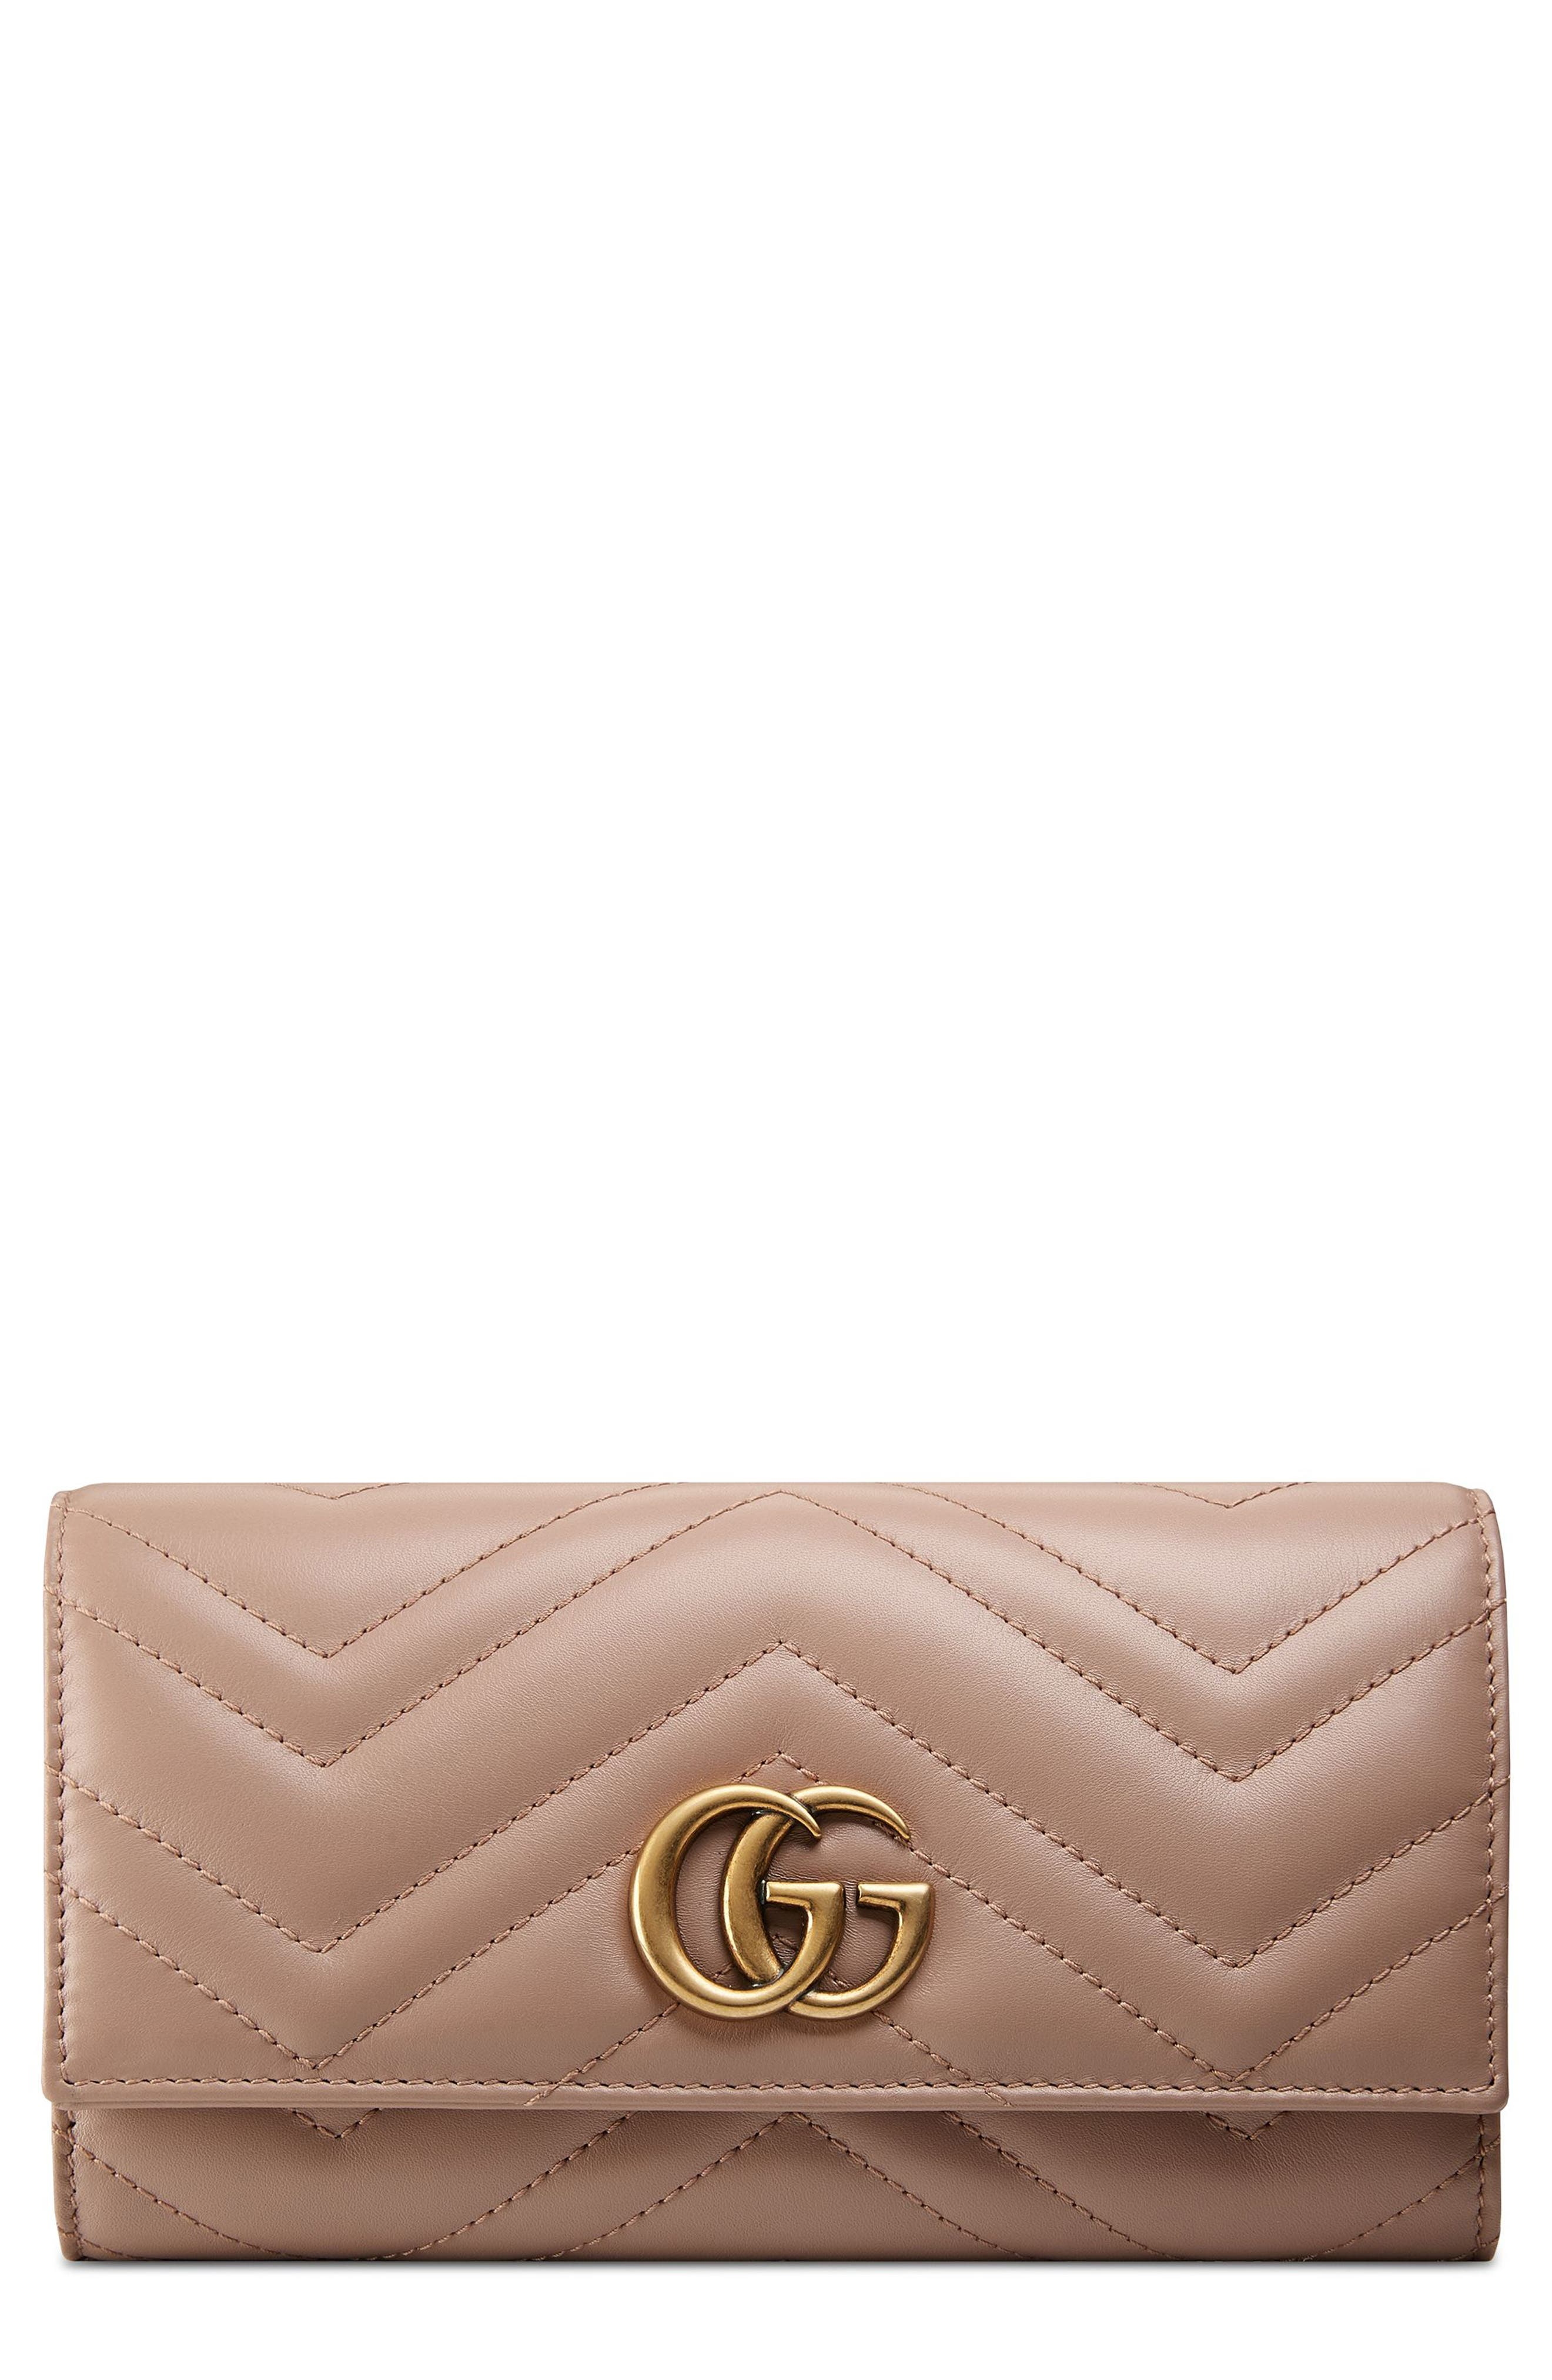 Alternate Image 1 Selected - Gucci GG Marmont Matelassé Leather Continental Wallet